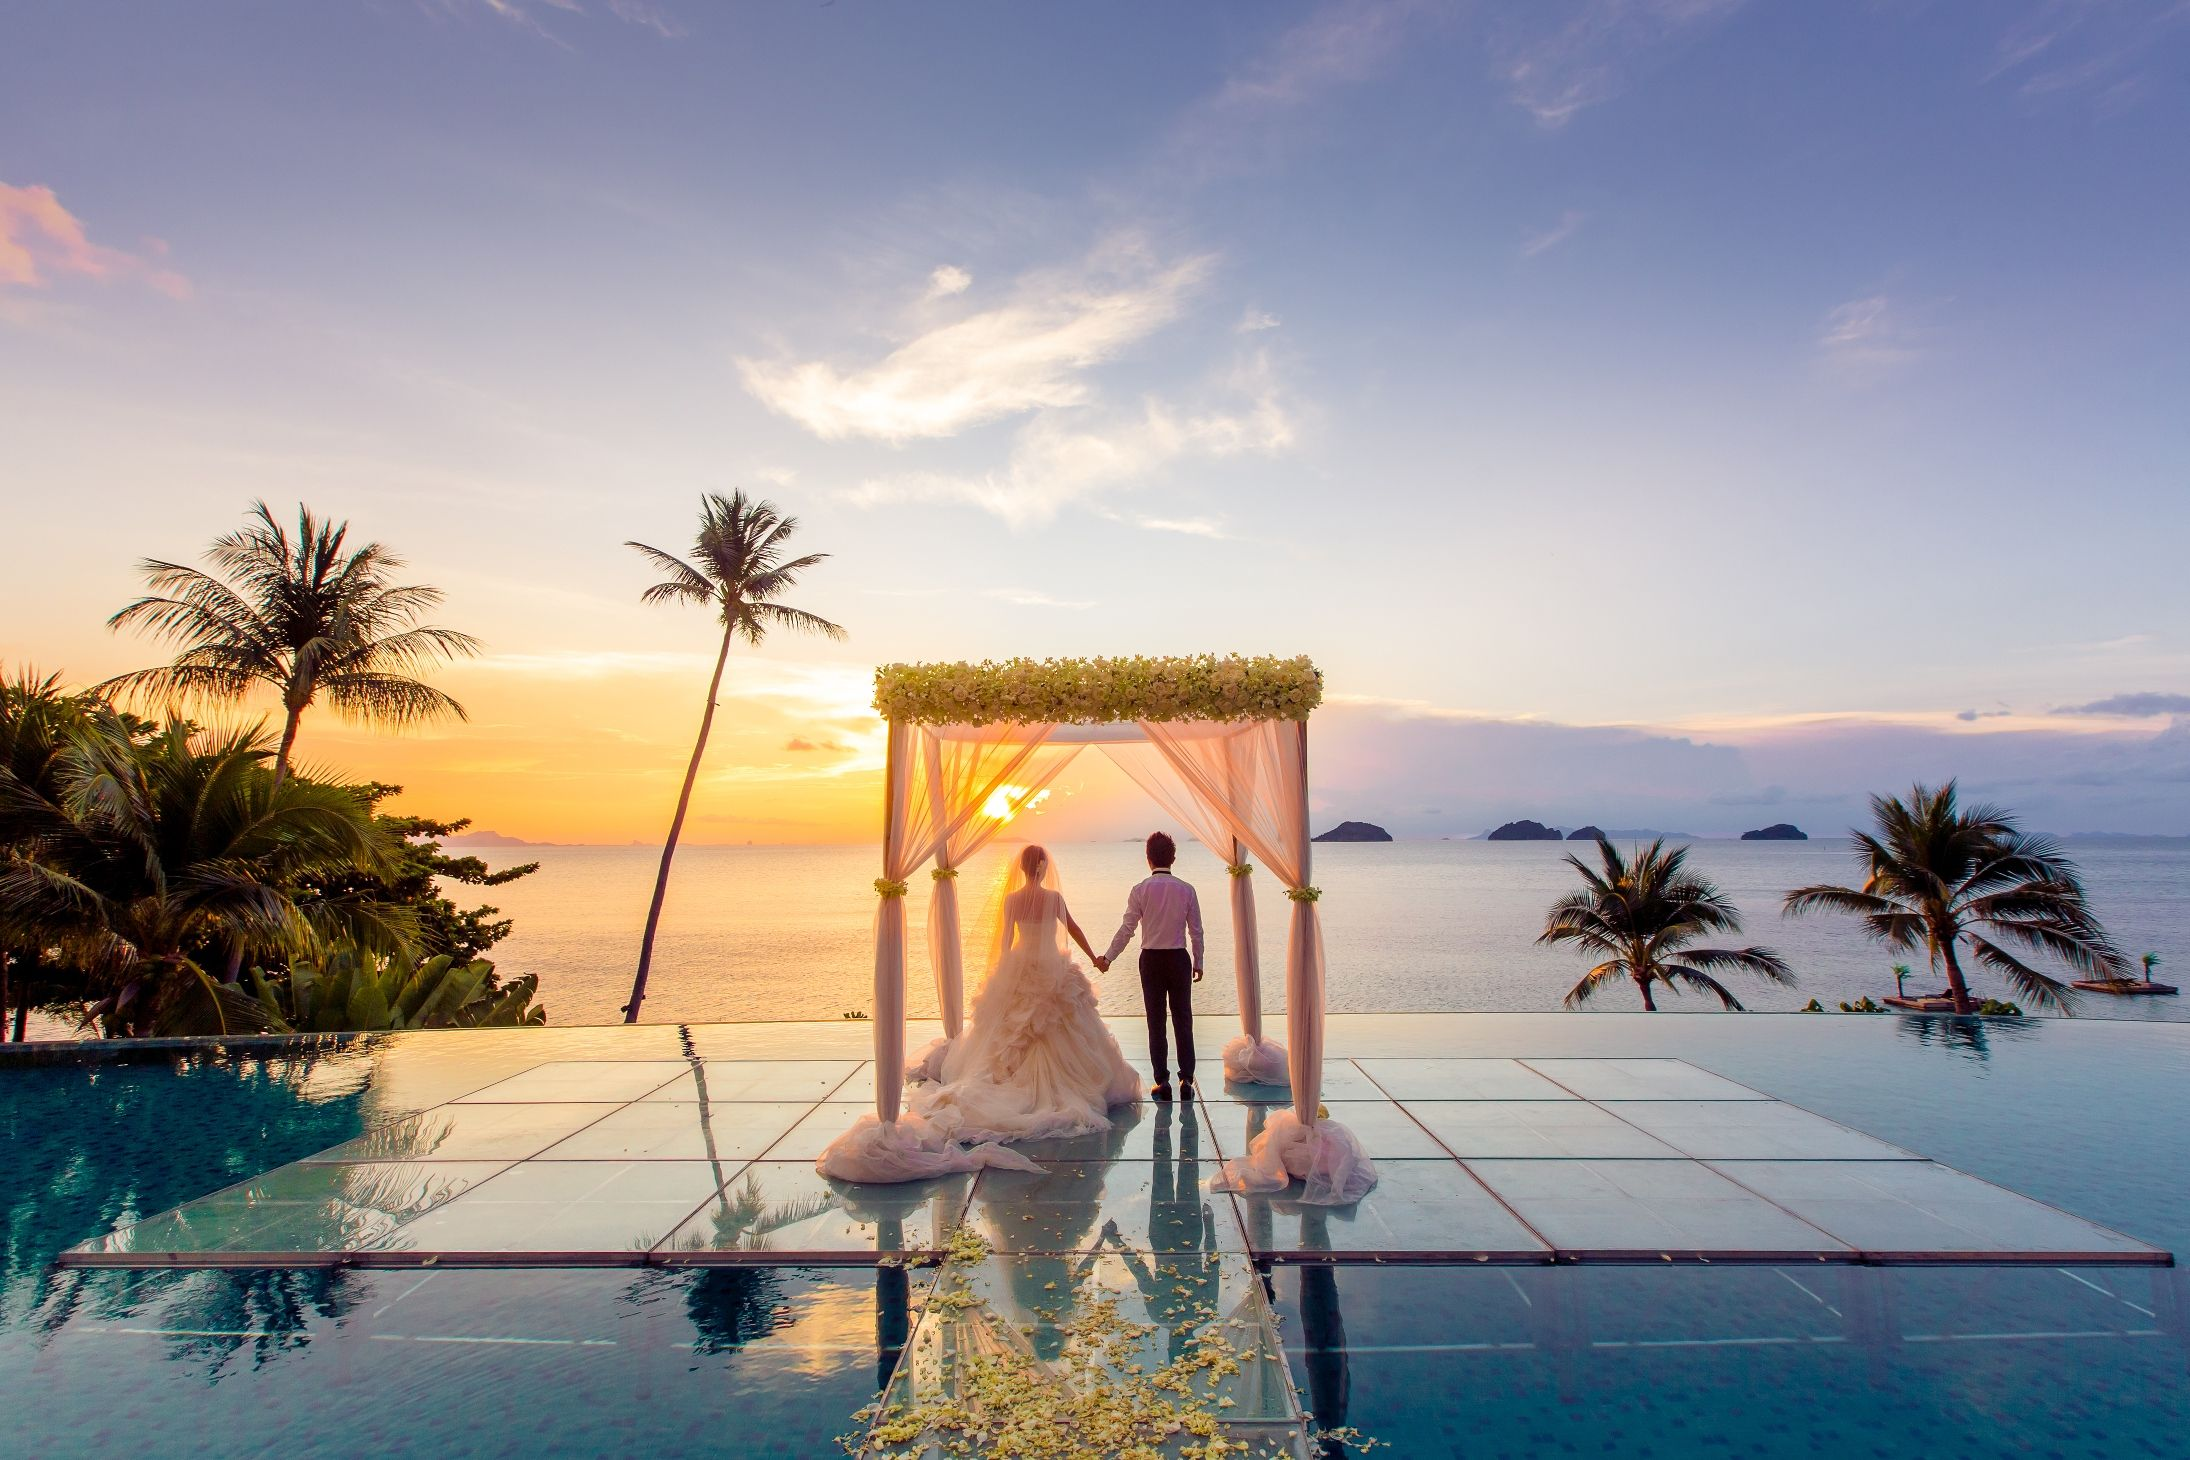 Will you marry me? Yes, I will. (Photo credit eak_samui